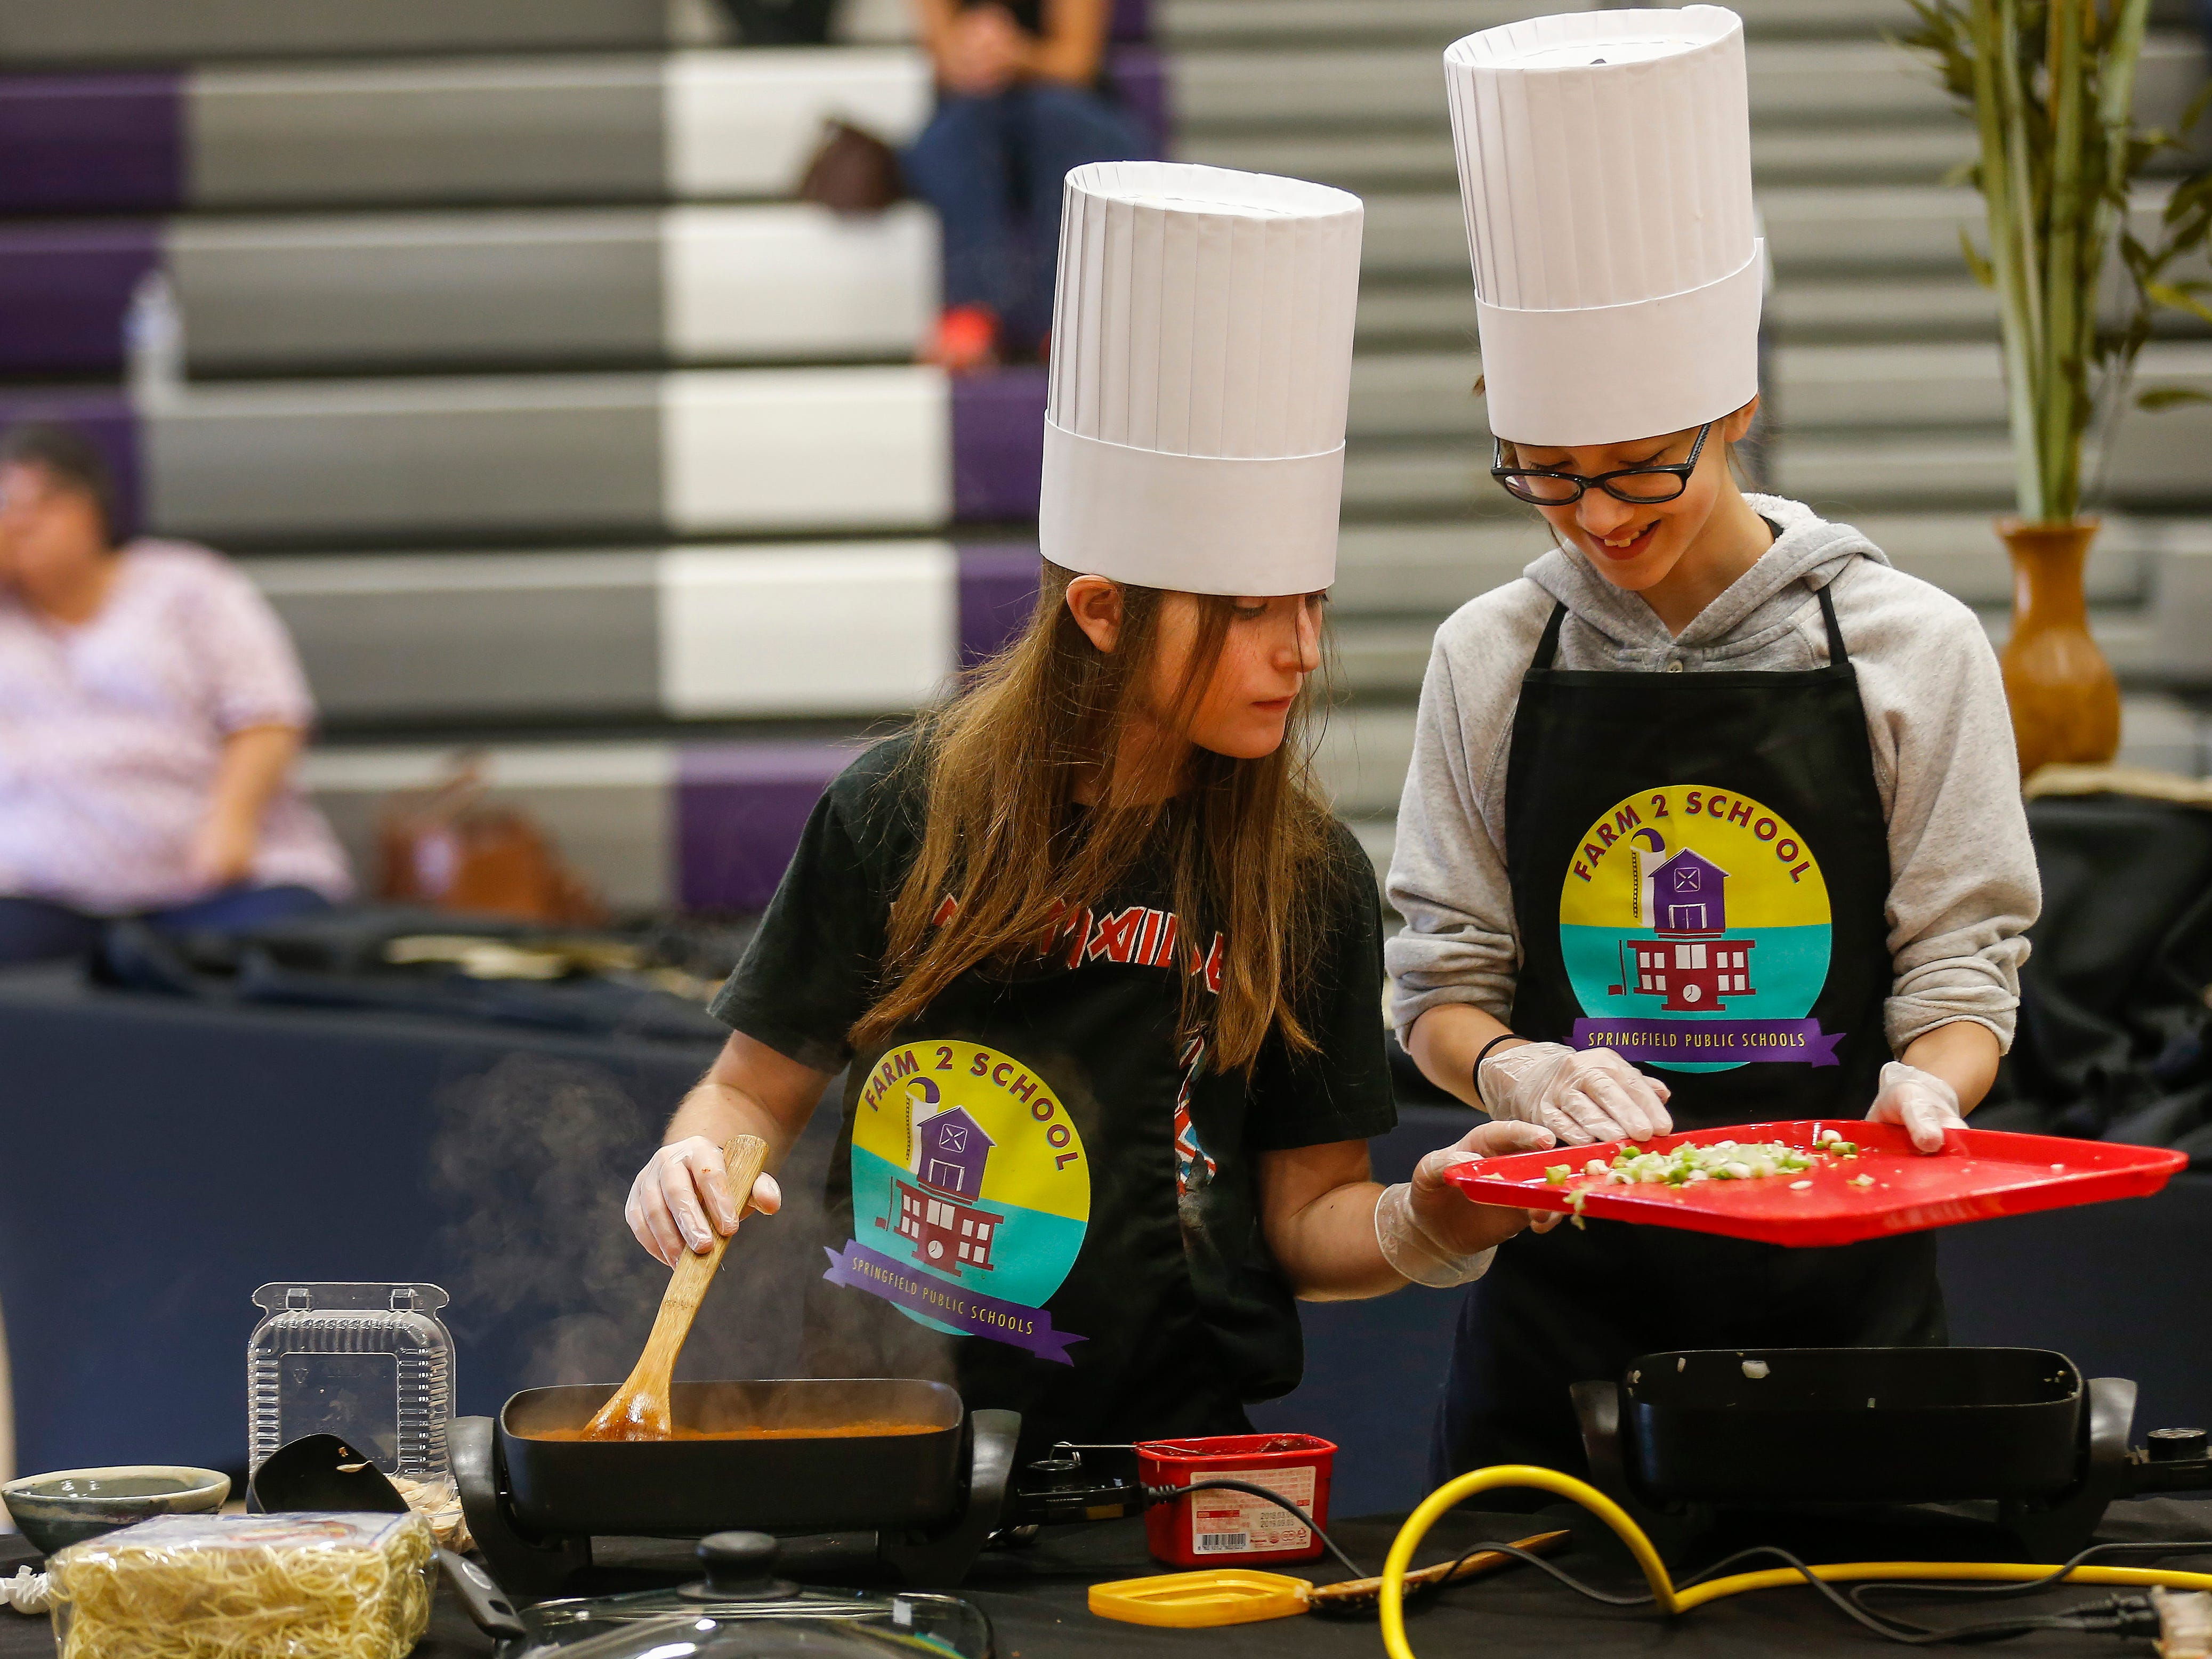 Sage Wilson, left, and Danielle McCorison, students at Central Scholars, prepare their dish during the third annual Junior Chef Competition at Hickory Hills Middle School on Saturday, Sept. 29, 2018.